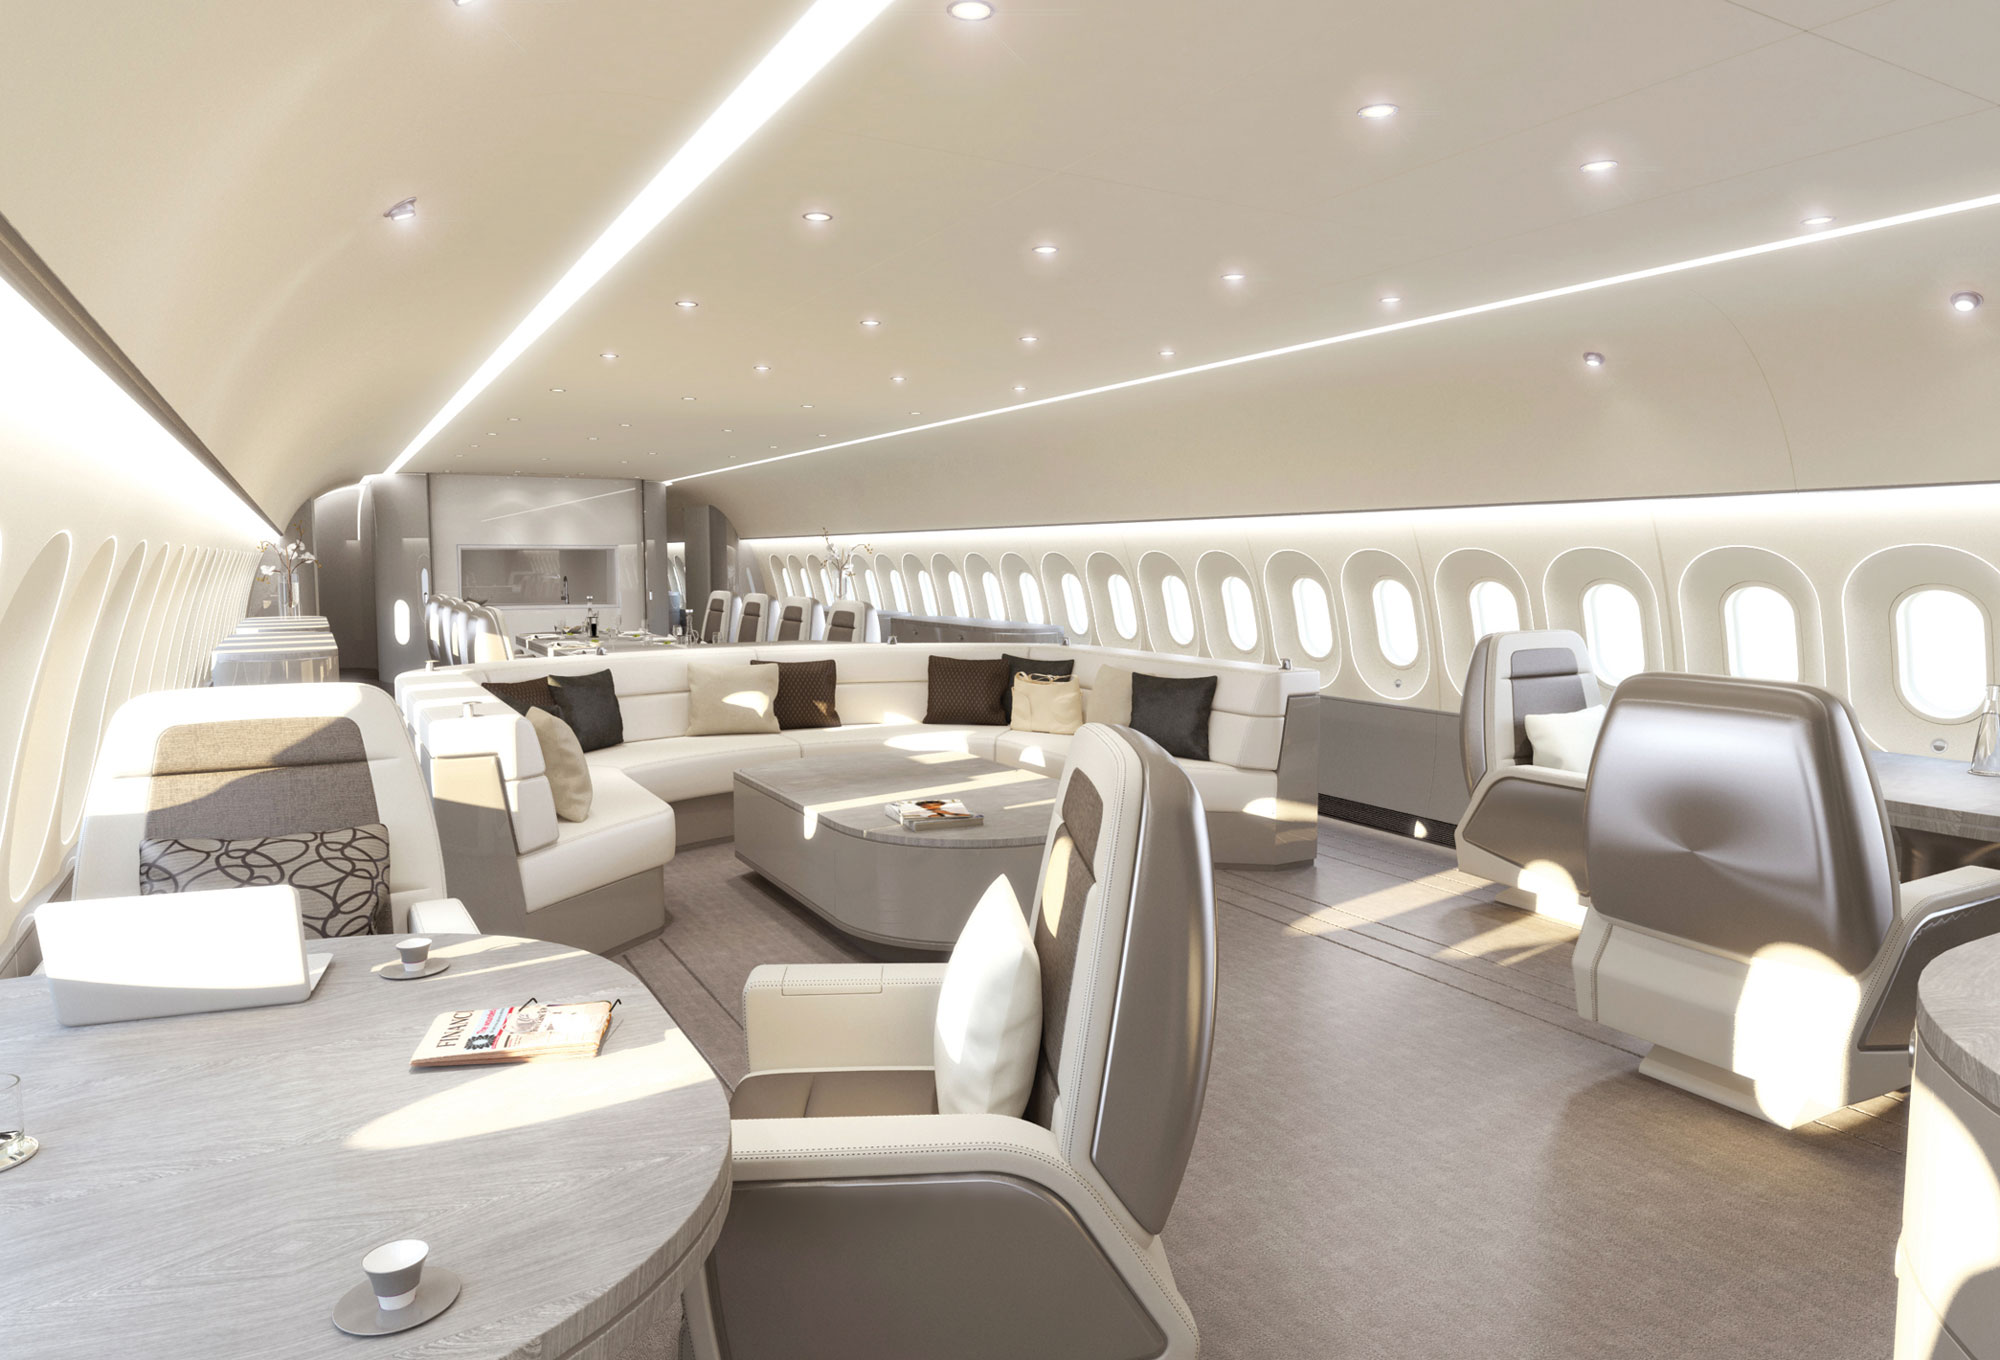 Luxury VIP Cabins Increasing In Popularity Business Aviation News